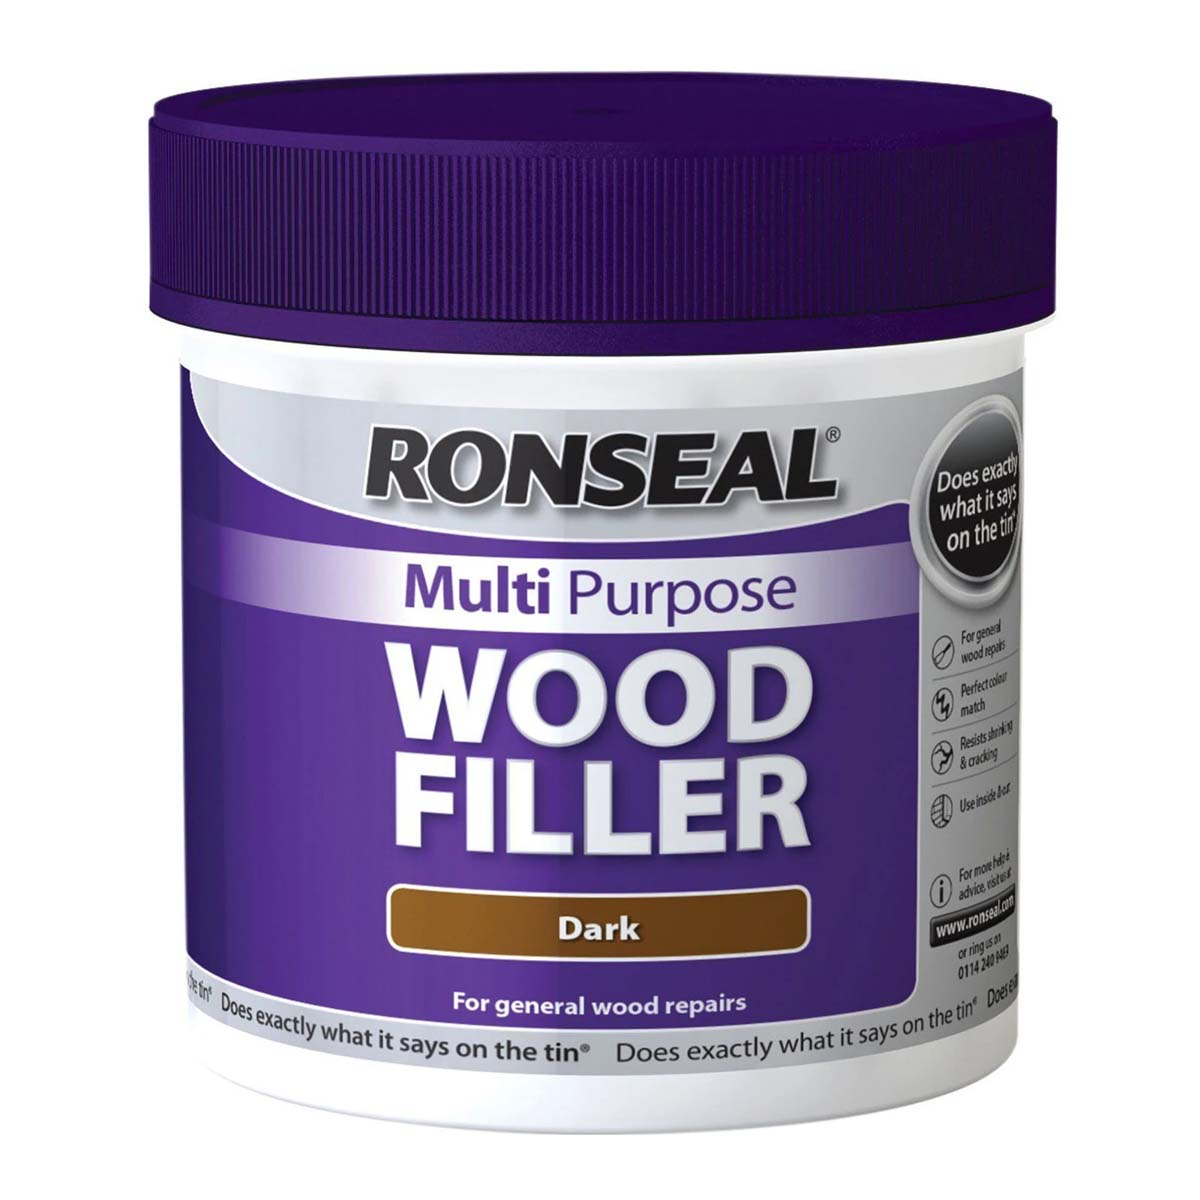 Ronseal Multi Purpose Wood Filler Dark 250G (34738)